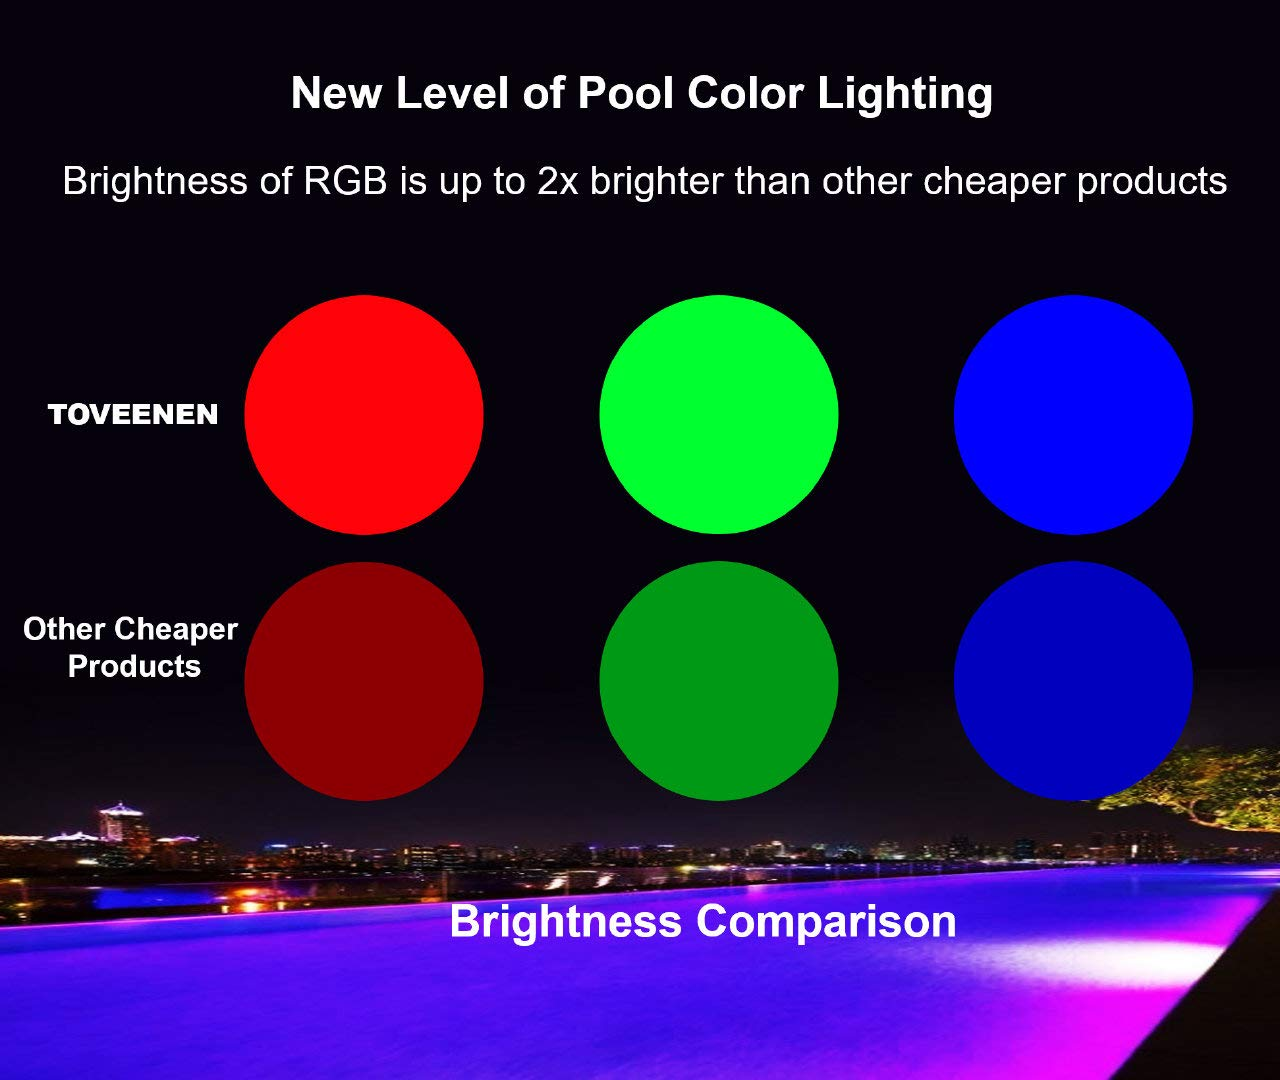 Color-changing LED Pool Light 120V 40Watt Replacement For Incandescent Bulbs in Pool Light, Color Memory, 16 light shows, Switch Control (120V,40Watt) by TOVEENEN (Image #2)